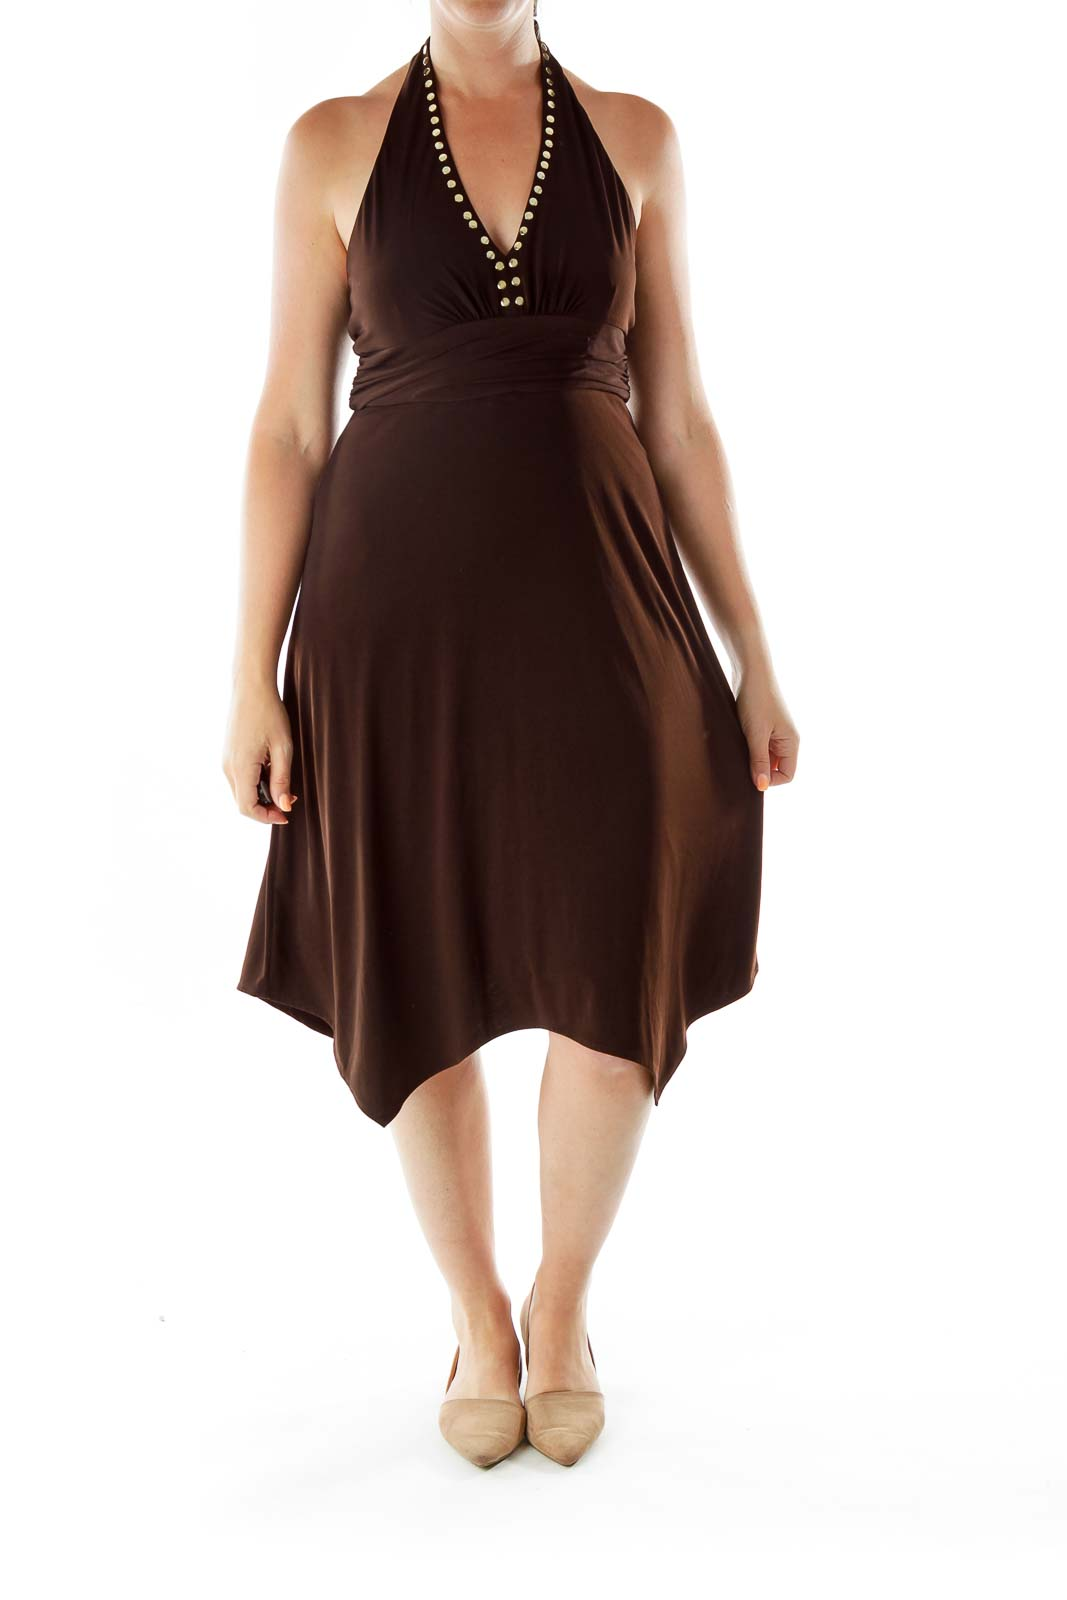 Brown Studded Halter Dress